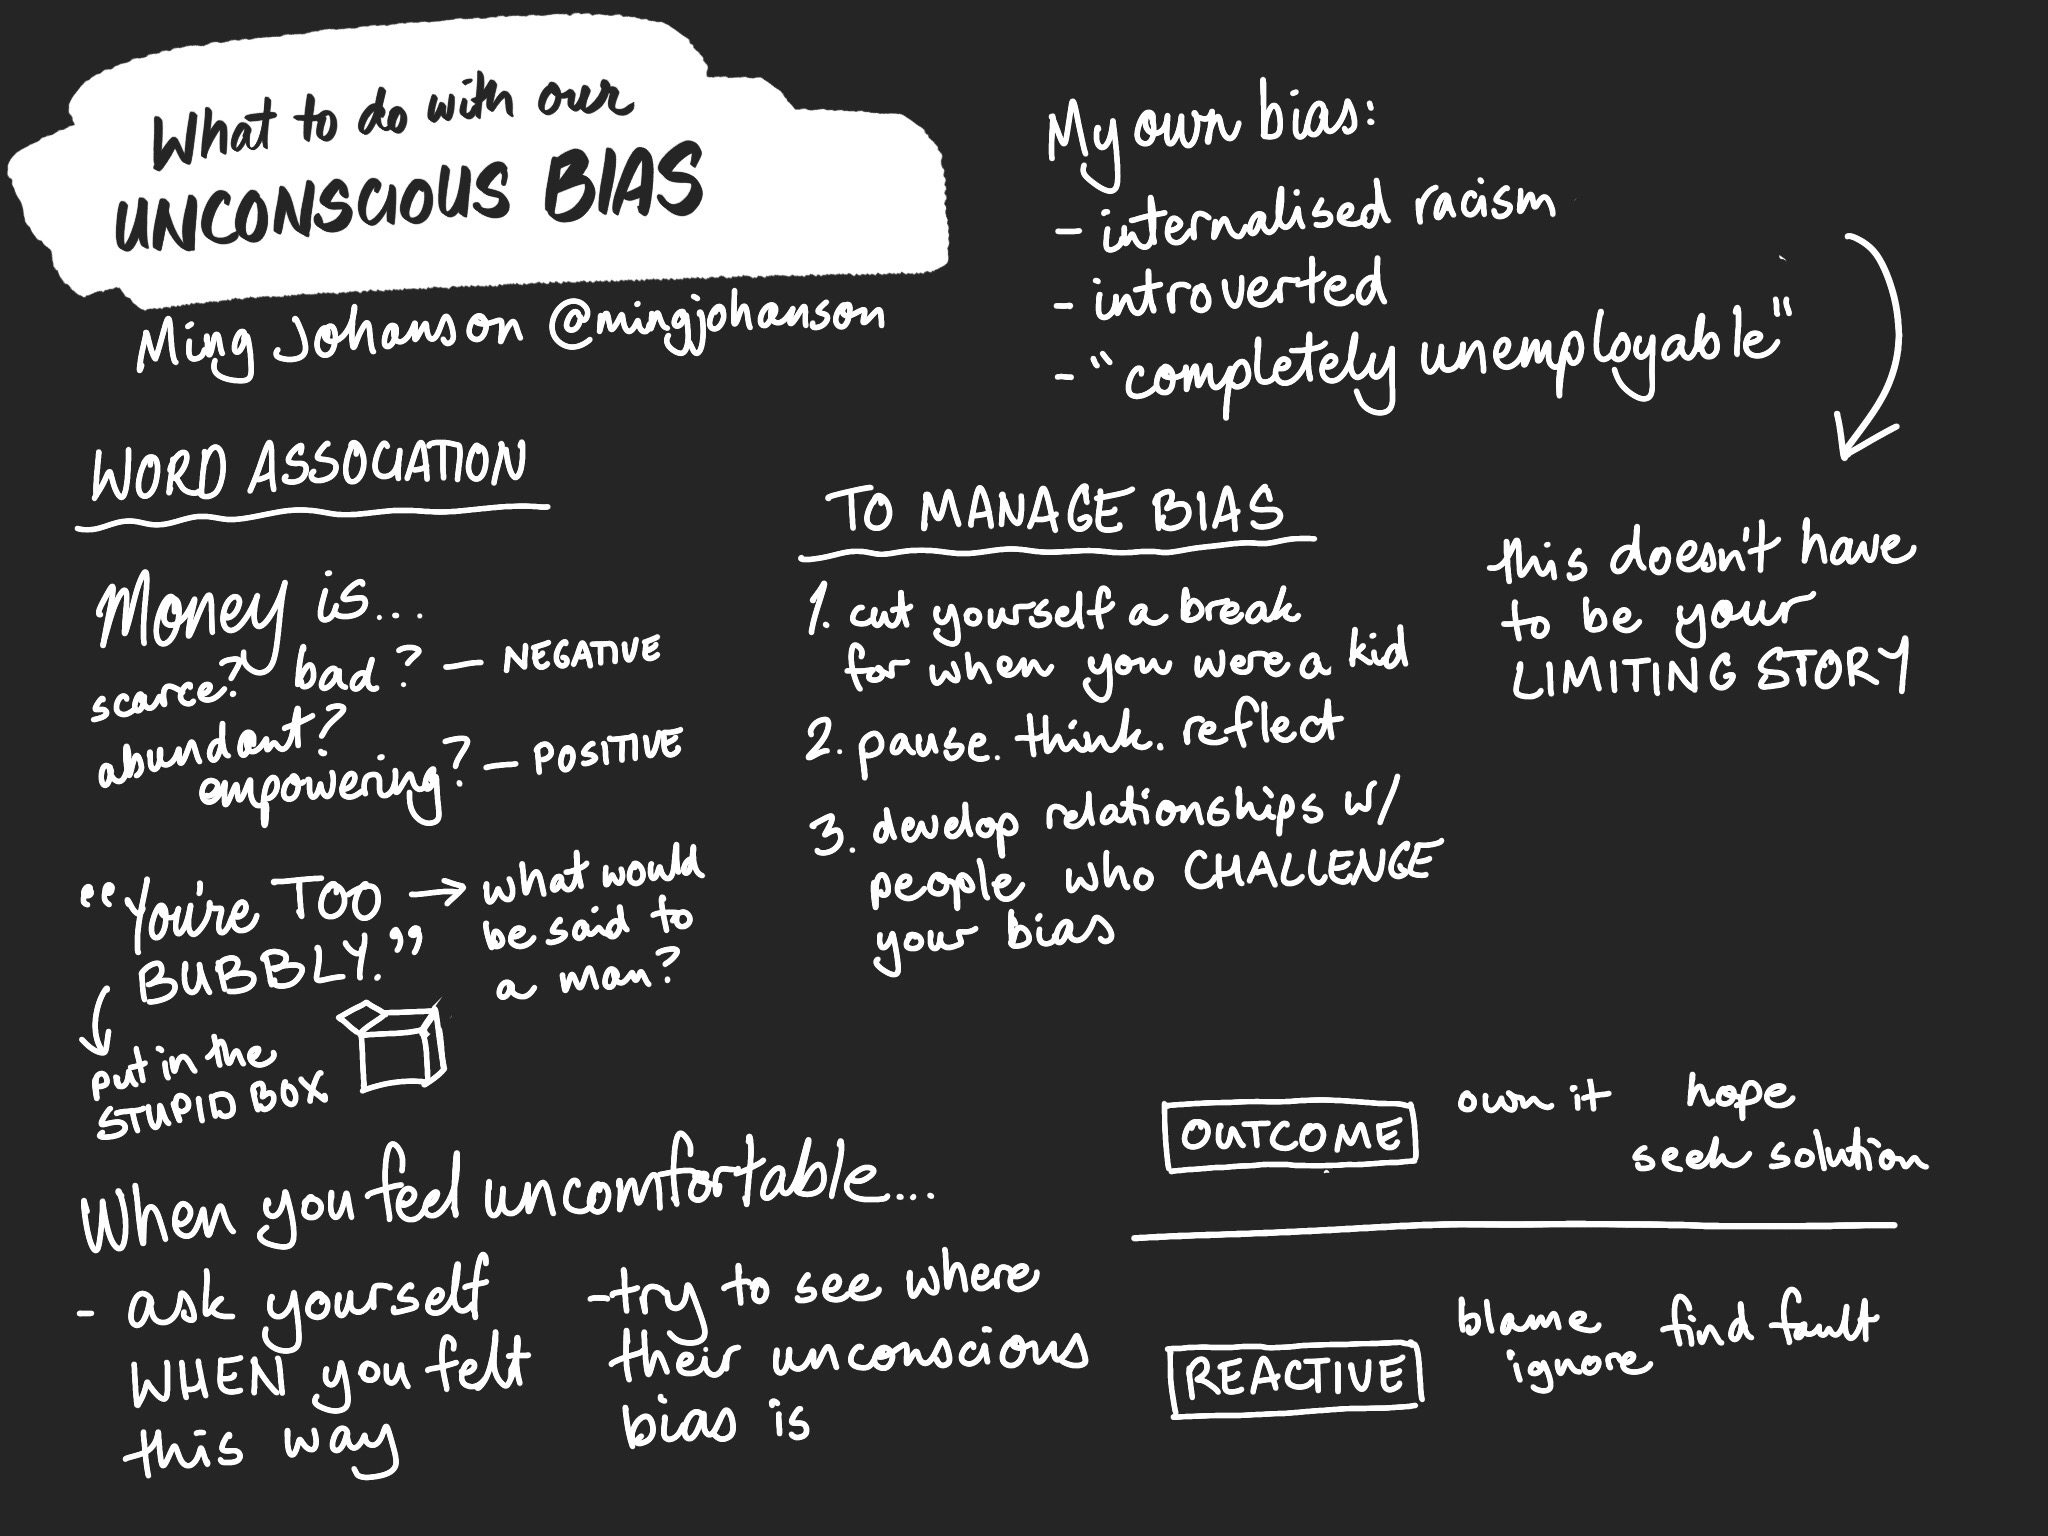 Sketchnote of the talk What to do with our unconscious bias